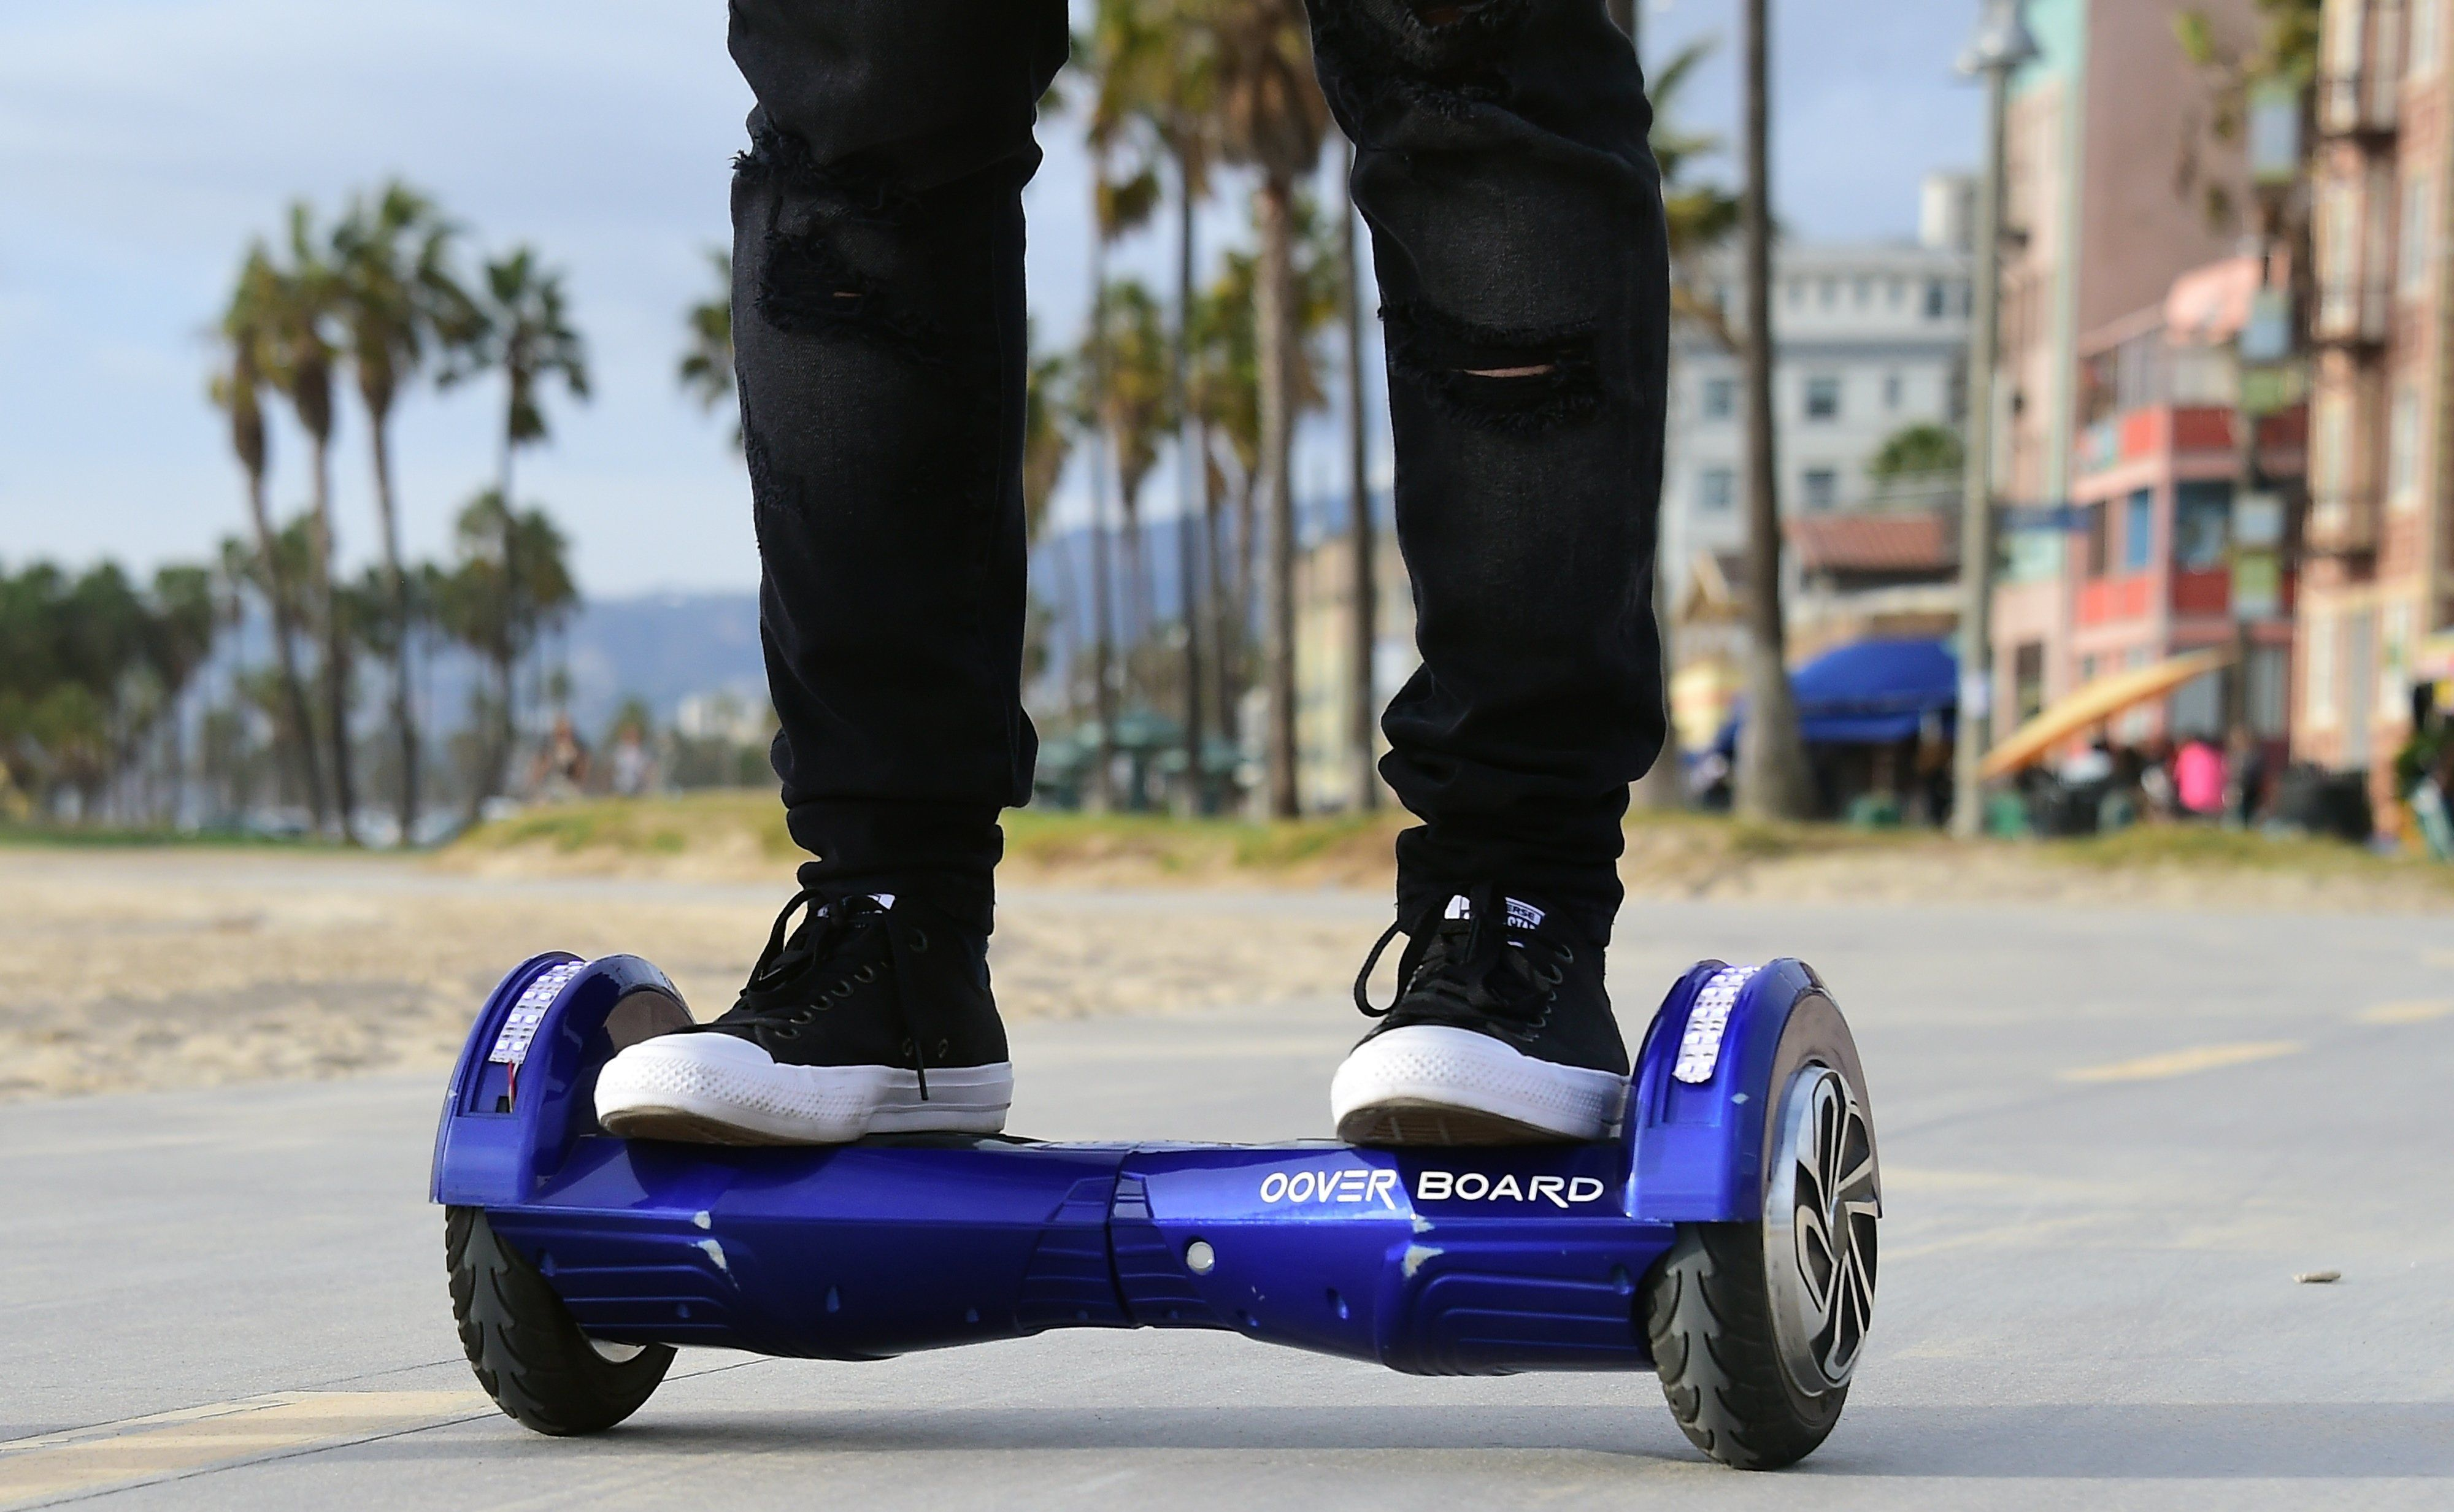 Michael Tran uses his hoverboard on the Venice Beach Boardwalk on December 10, 2015. The hot item on many holiday lists will help you zip around town, the shopping mall and from one end of the workplace to another.These so-called 'hoverboards' or self-balancing electric scooters, are surging in popularity in the first season where they have been available at relatively affordable prices -- as low as $300 for some models. AFP PHOTO/ FREDERIC J. BROWN / AFP / FREDERIC J. BROWN        (Photo credit should read FREDERIC J. BROWN/AFP/Getty Images)